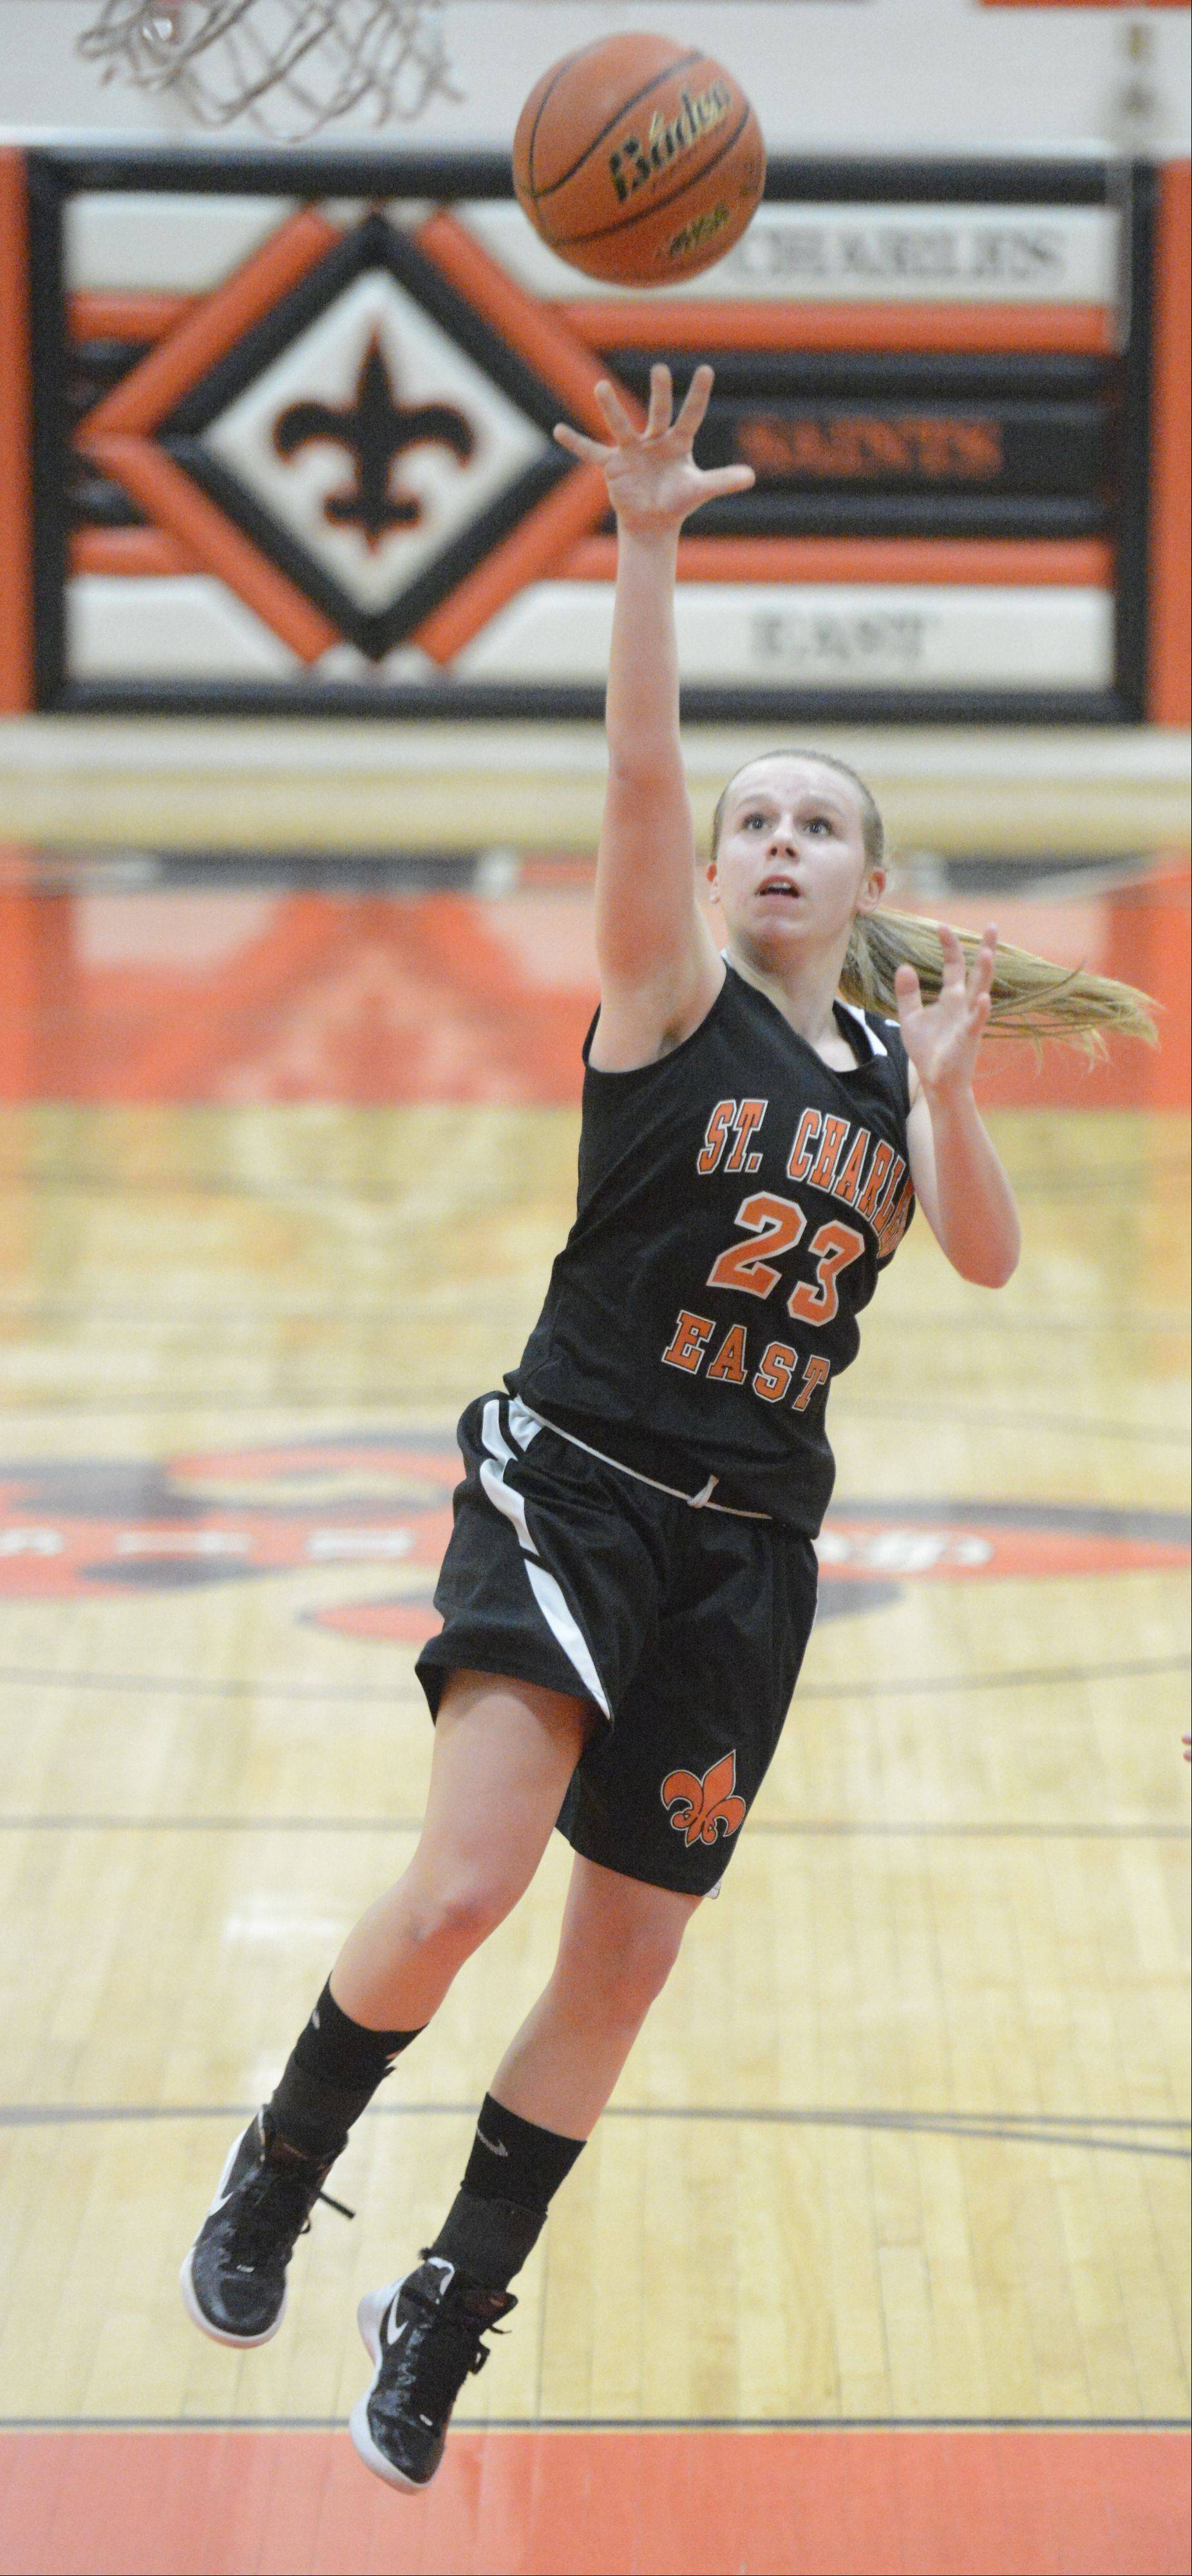 Images from the Batavia vs. St. Charles East girls basketball game Tuesday, February 12, 2013.